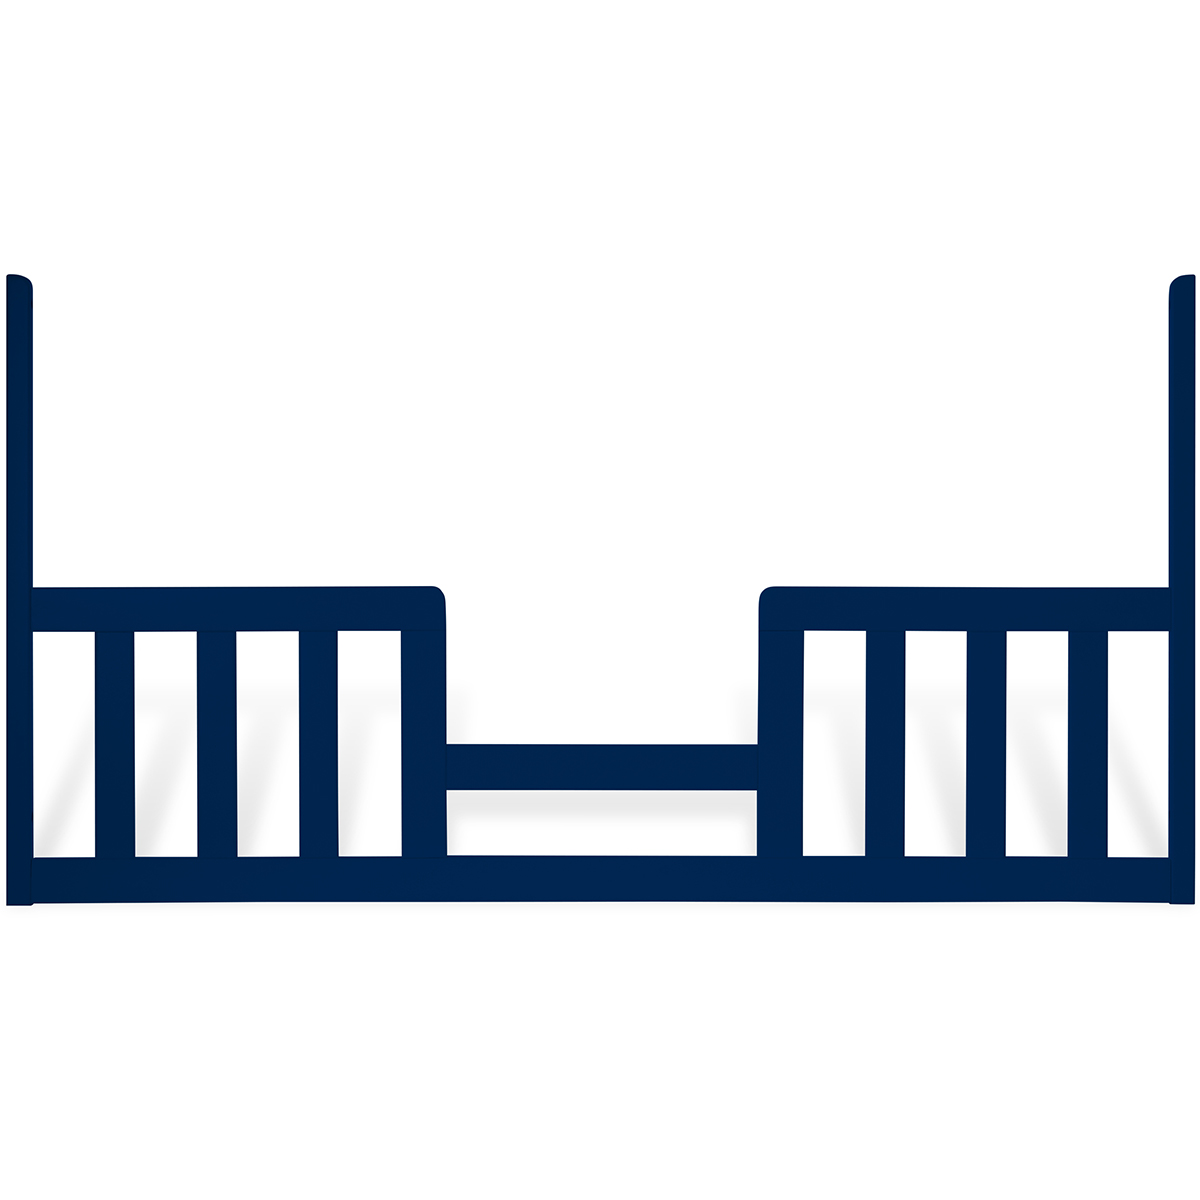 Child craft toddler guard rail for euro crib in nautical blue for Child craft london crib instructions